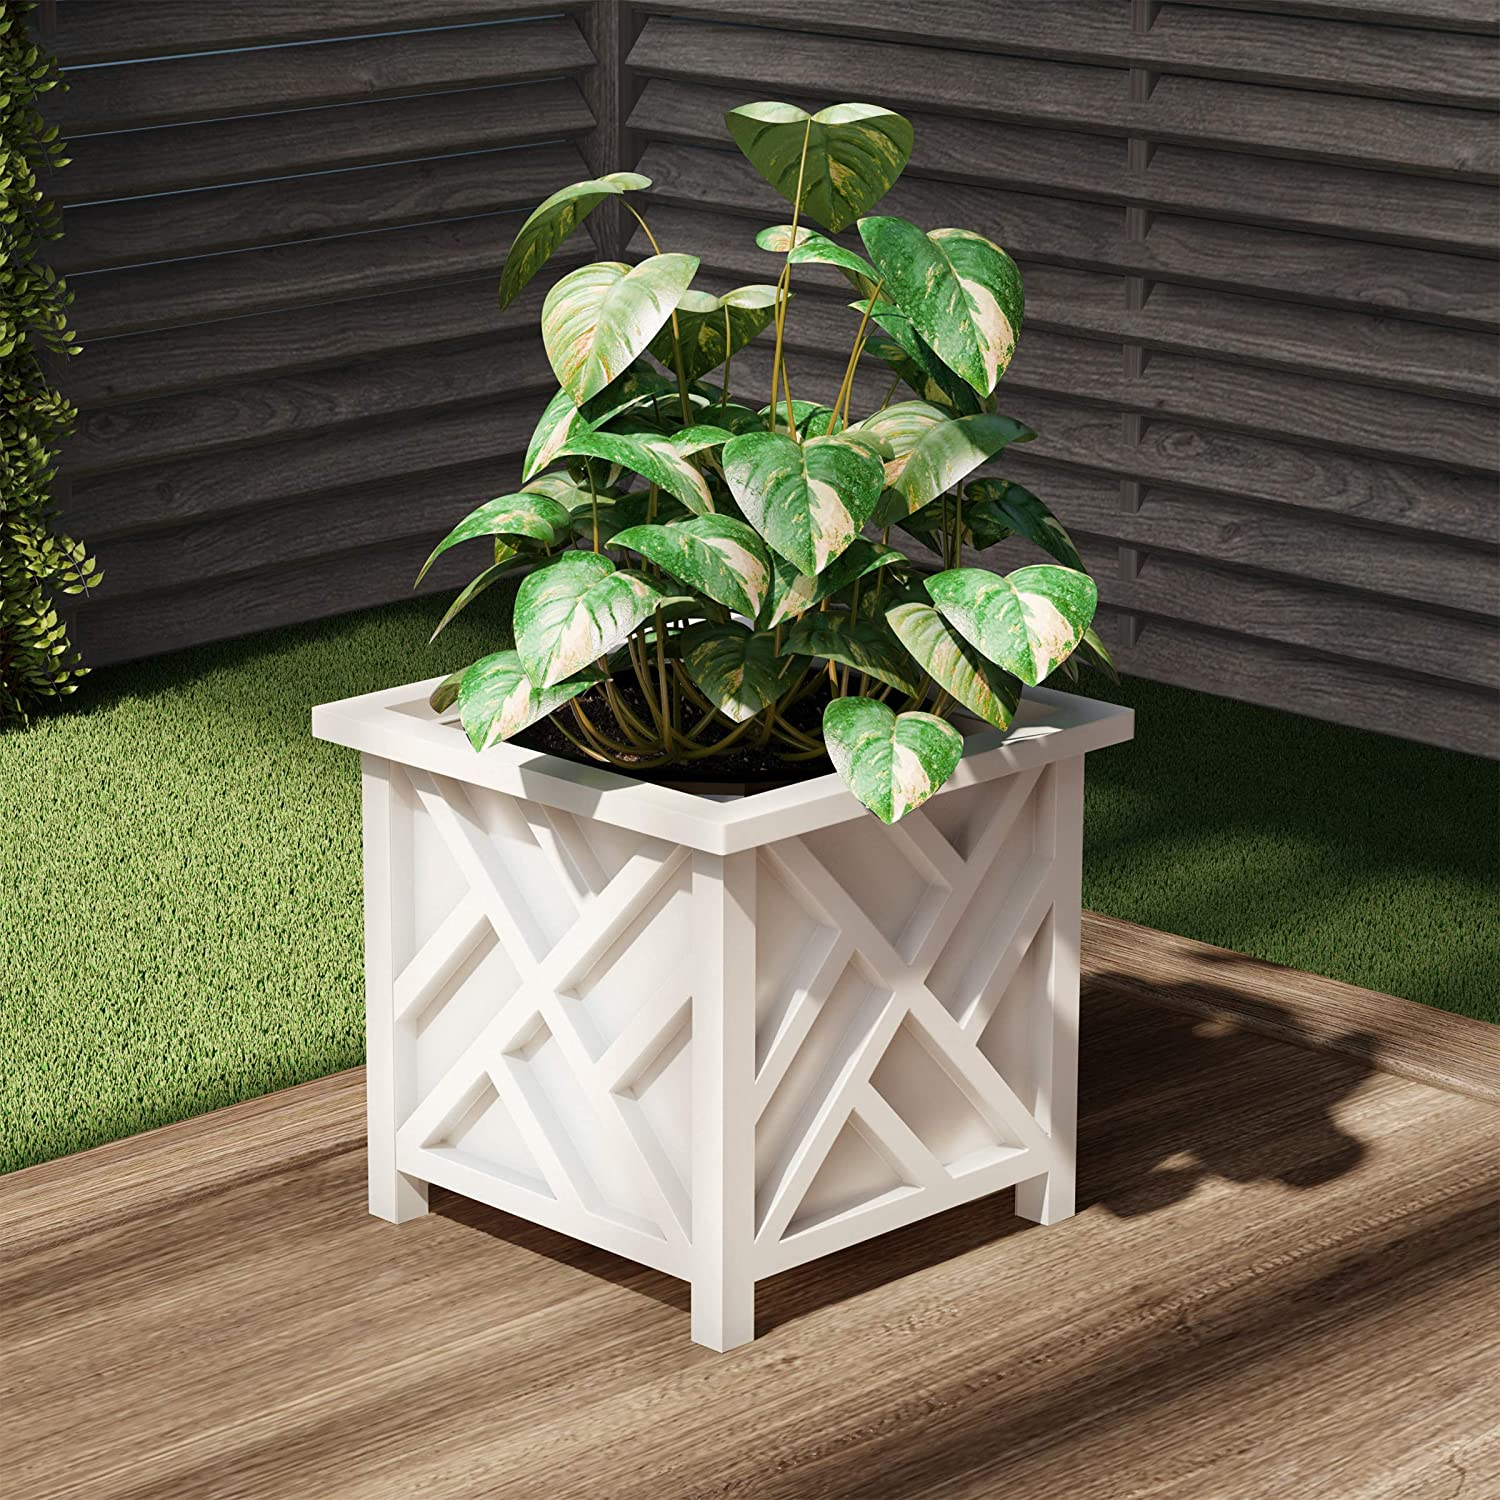 Pure Garden 50-LG5097 Square Planter Box-White Lattice Container for Flowers & Plants, Cream